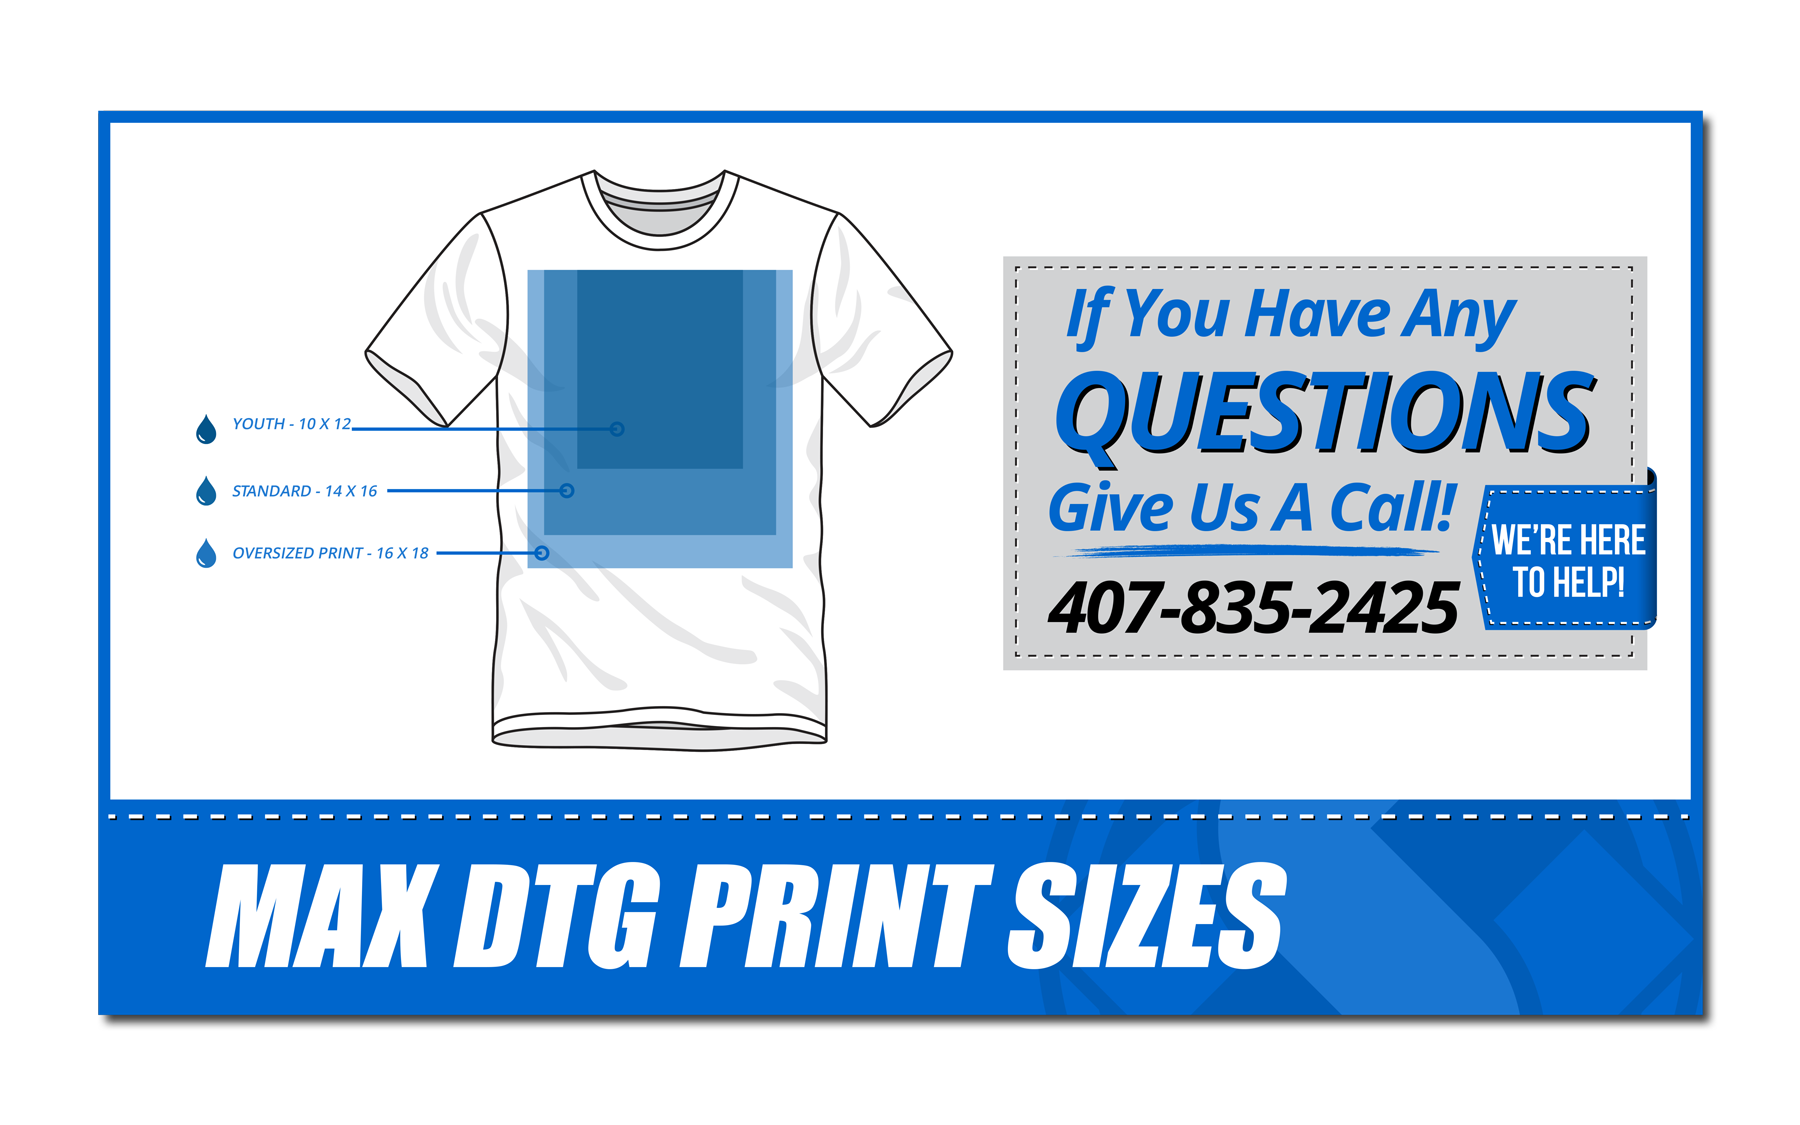 HS - Shirt Sizes - Max DTG Print Sizes